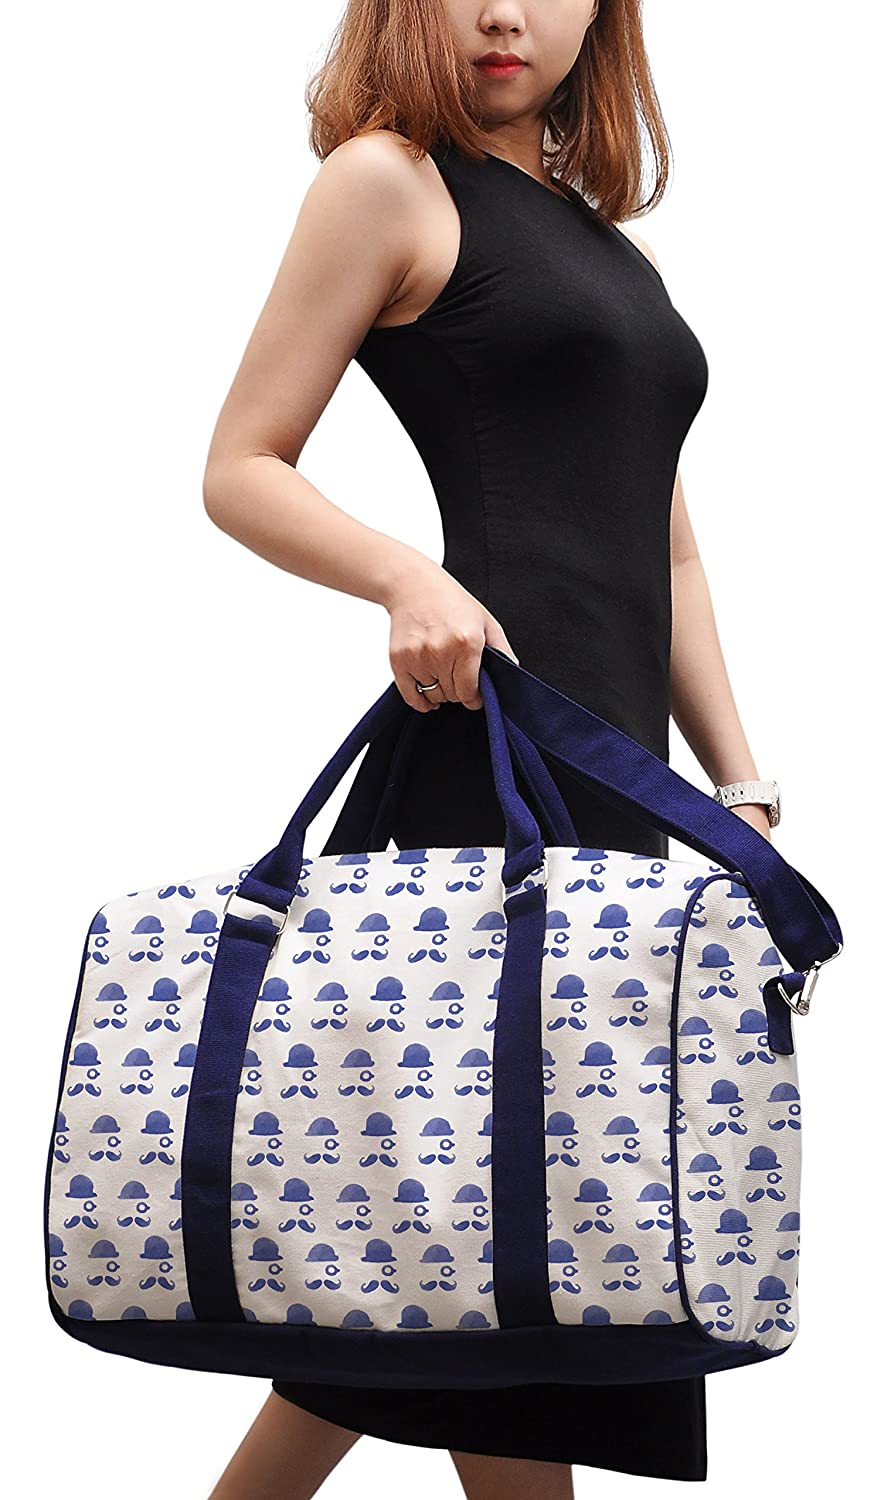 Mustache Men Printed Canvas Duffle Luggage Travel Bag WAS/_42